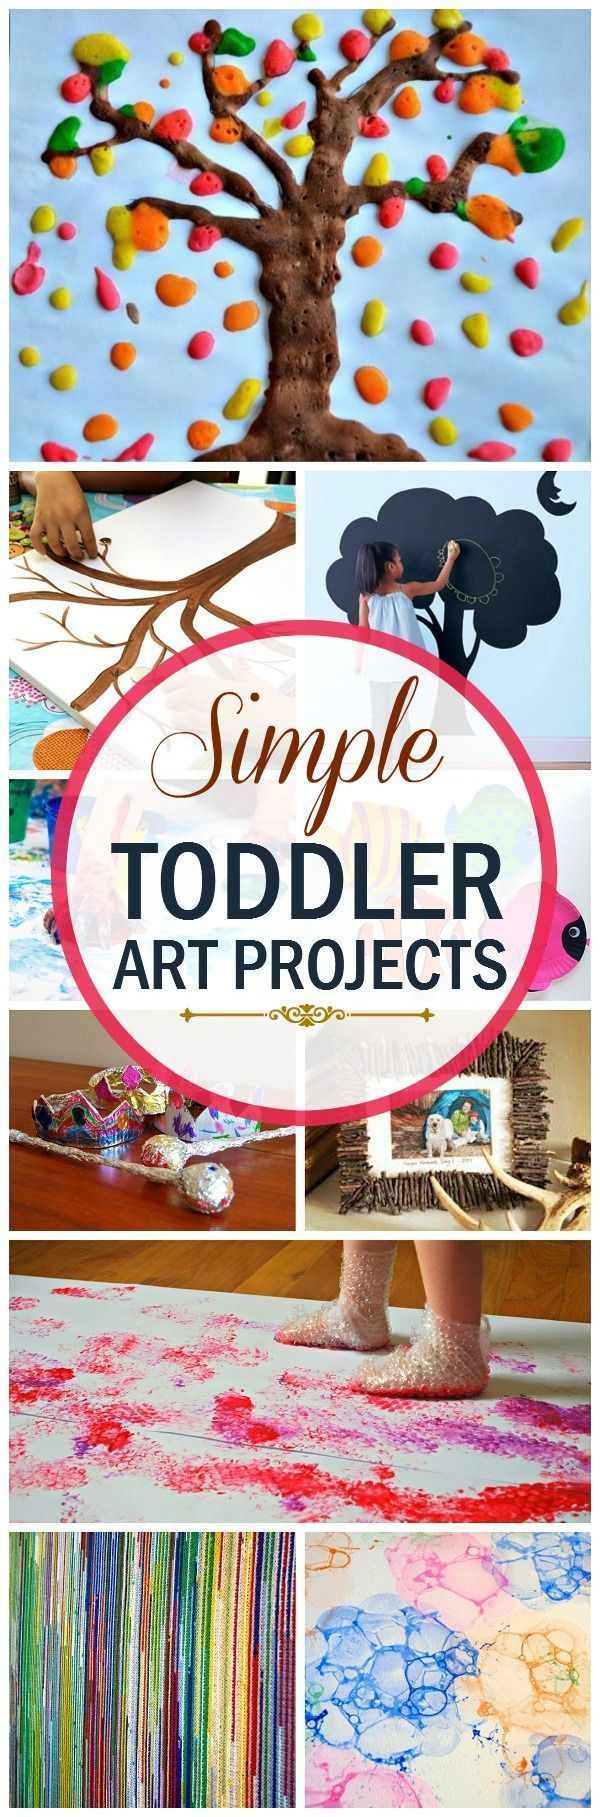 10 Simple Art Projects For Toddlers